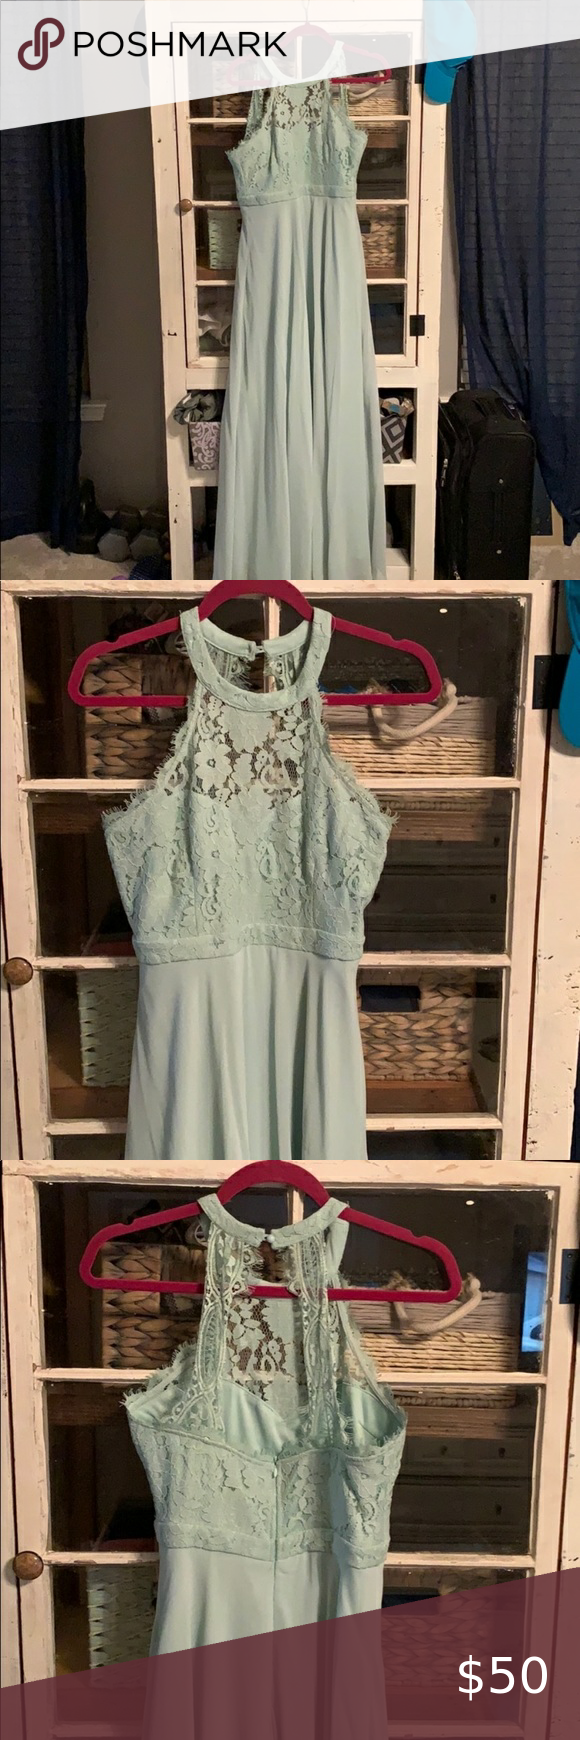 Lulus light sage green bridesmaid dress. Lace  Halter bridesmaid dress Has minor staining at main bottom where I was too short for the dress.  A little hemming would fix it. Lulu's Dresses Maxi #sagegreenbridesmaiddresses